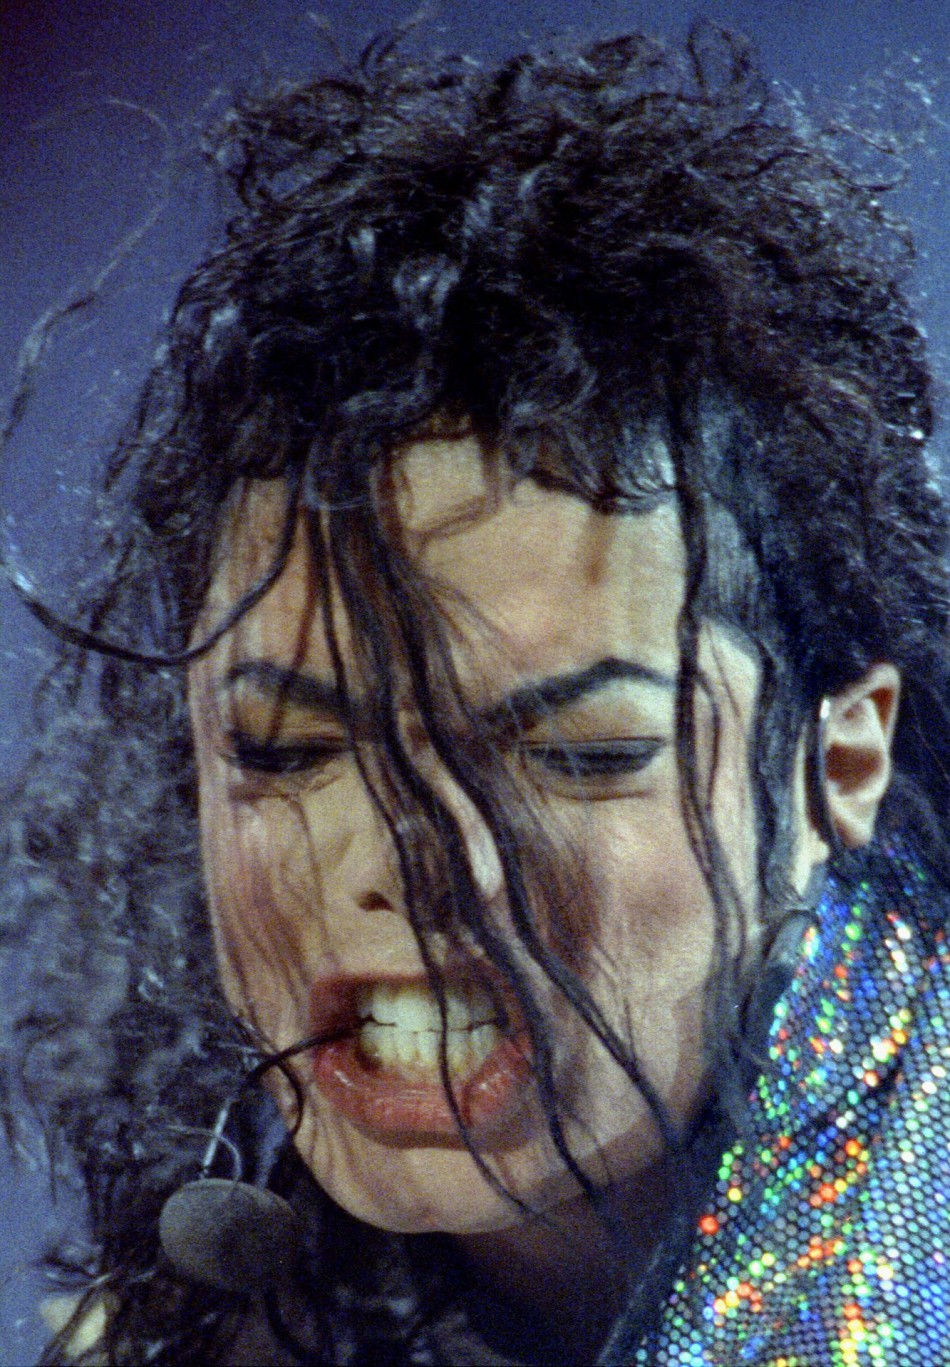 Michael Jacksons Hair Expected to Sell for Over 5000